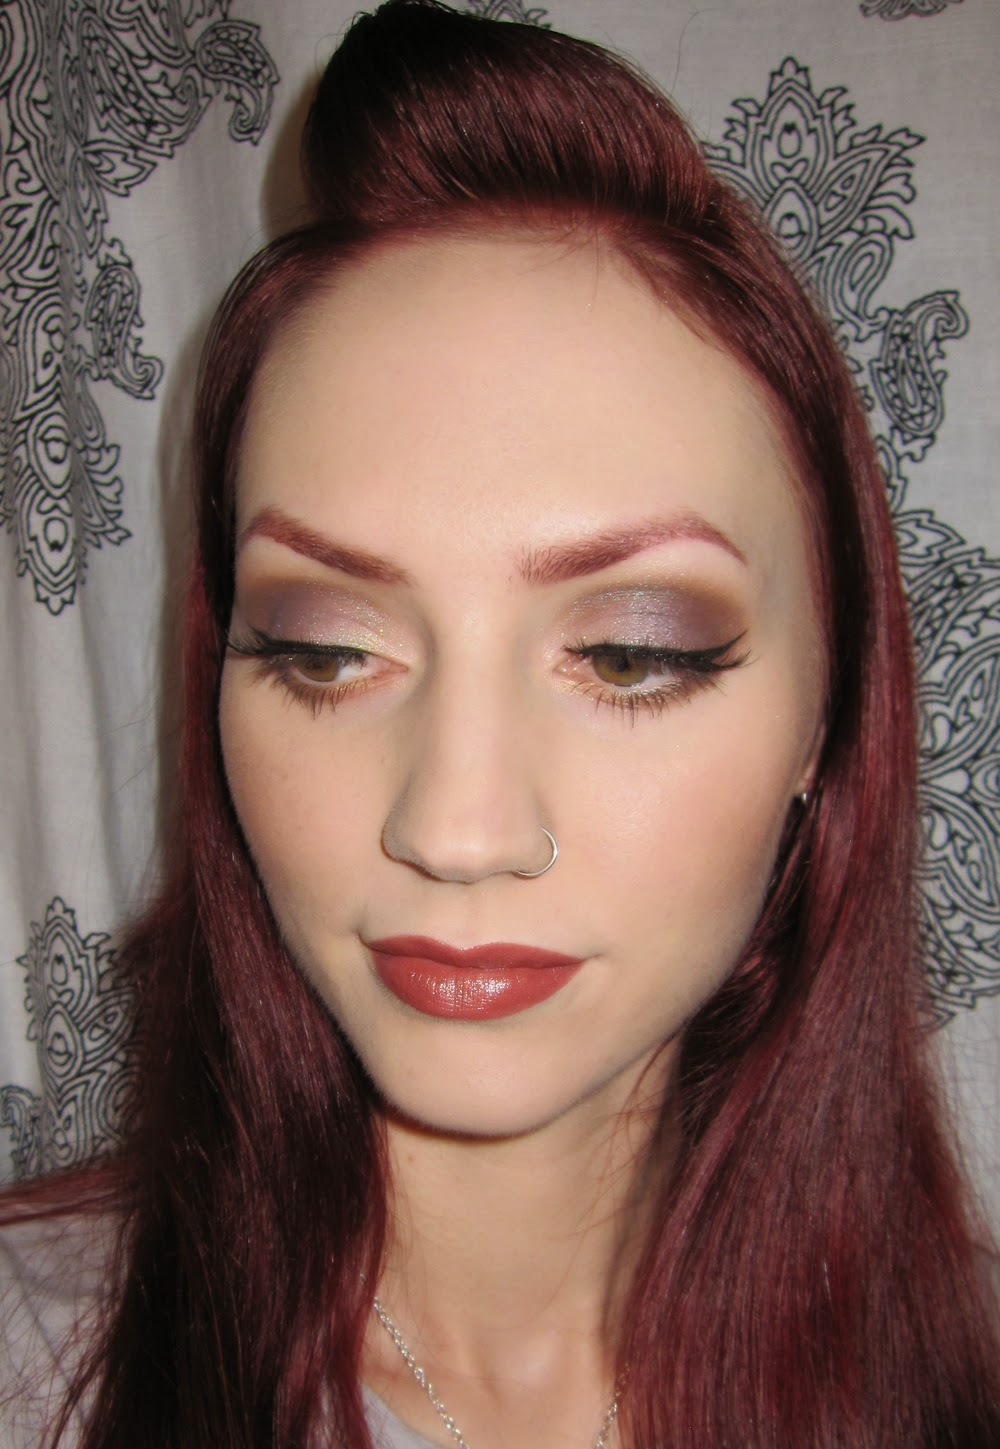 http://themoonmaiden-blix.blogspot.com/2014/09/another-soft-fall-eye-makeup-look.html